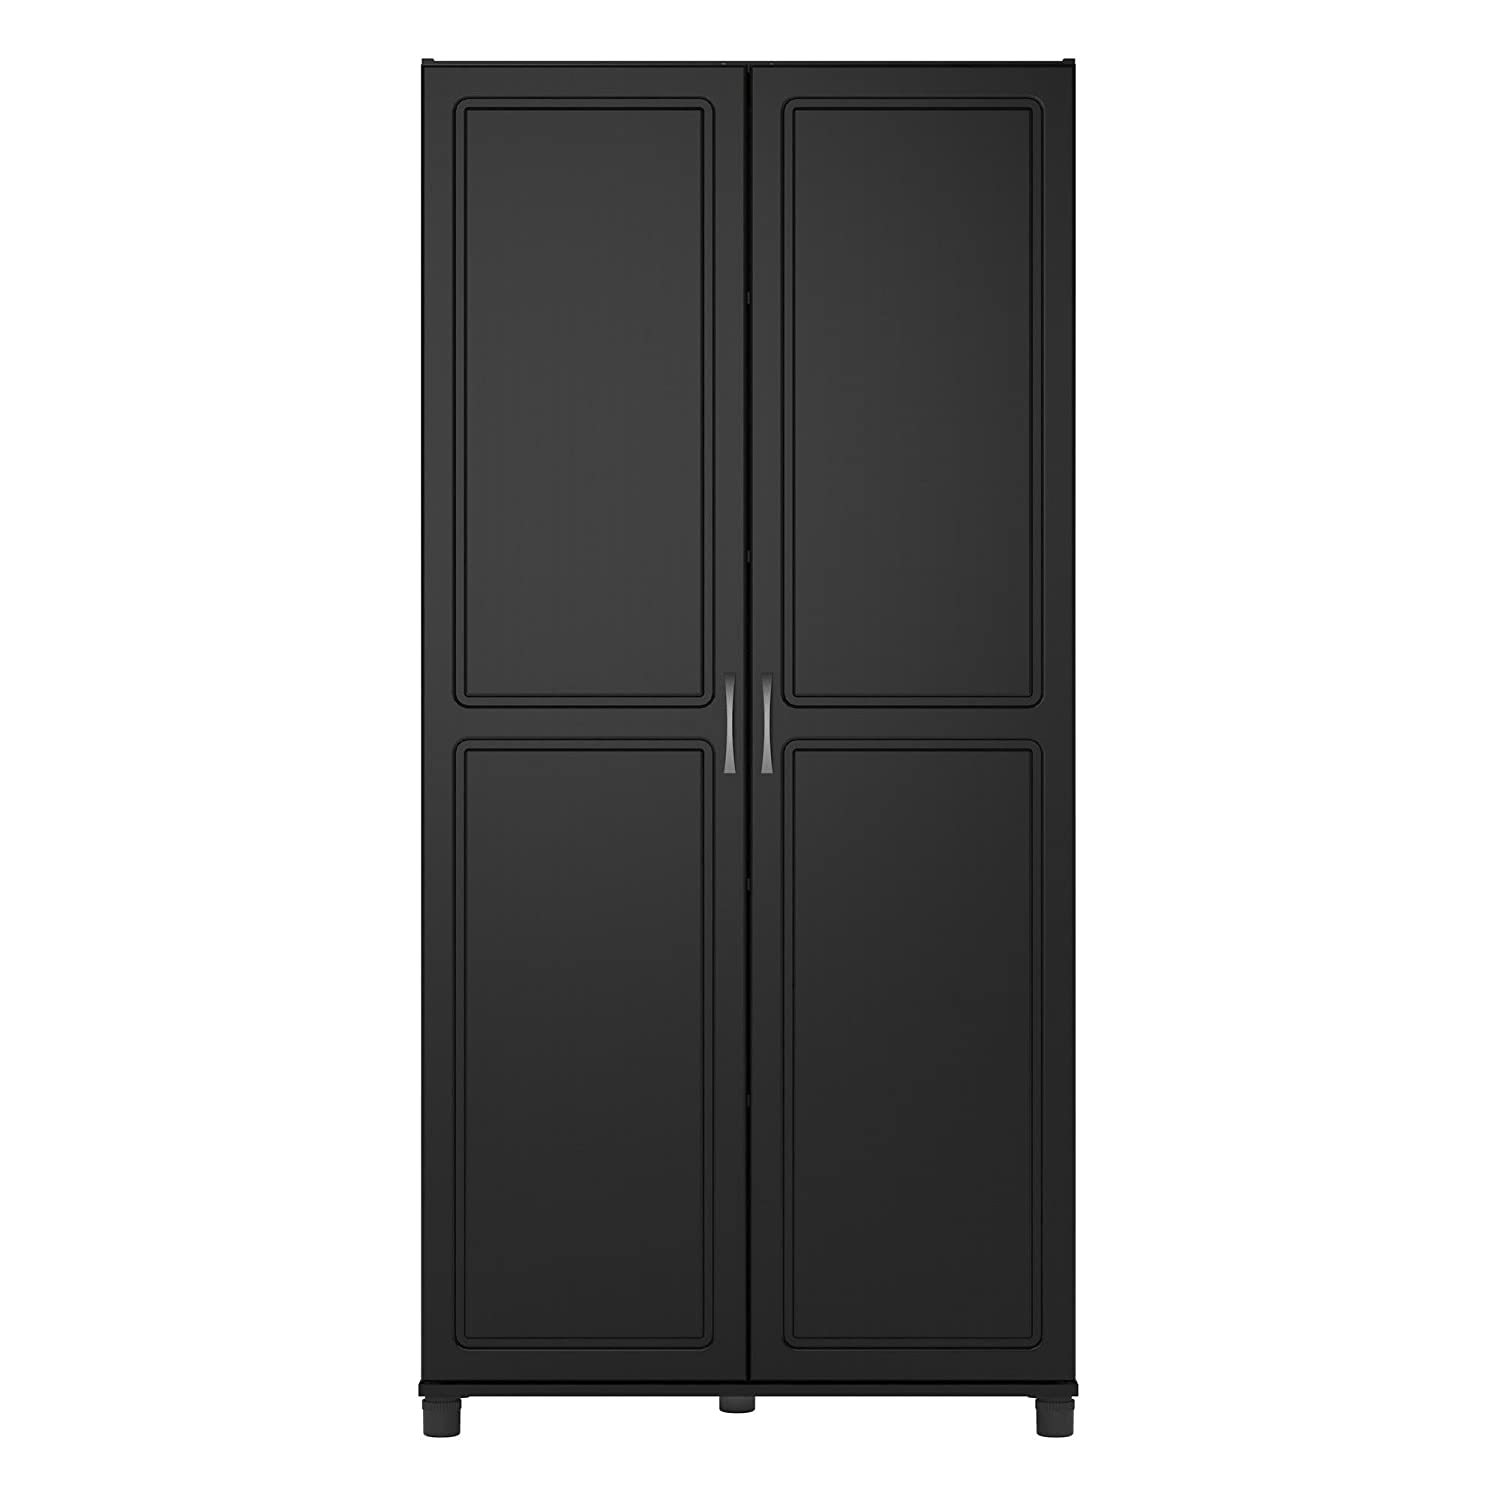 SystemBuild 7363414COM Utility Storage Cabinet, 36